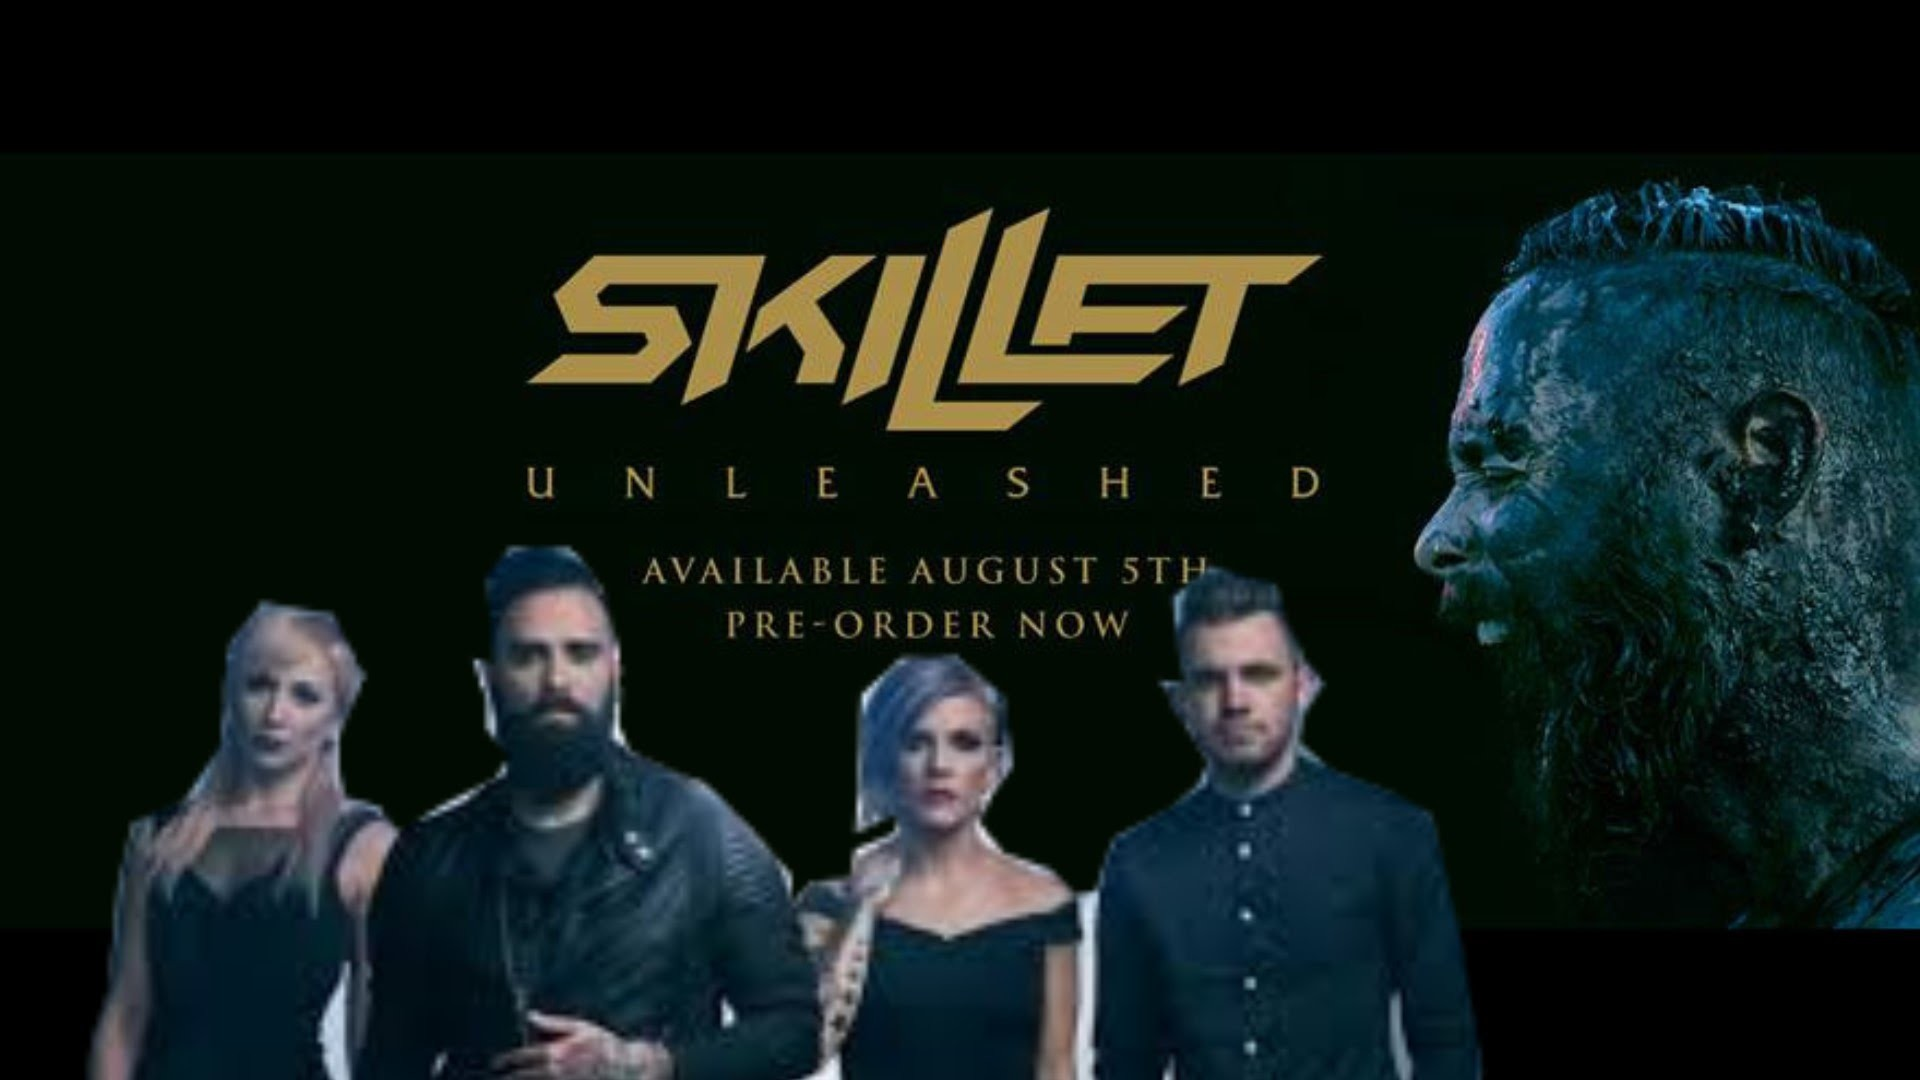 My thoughts on Skillet & #UNLEASHED | Share with Skillet!